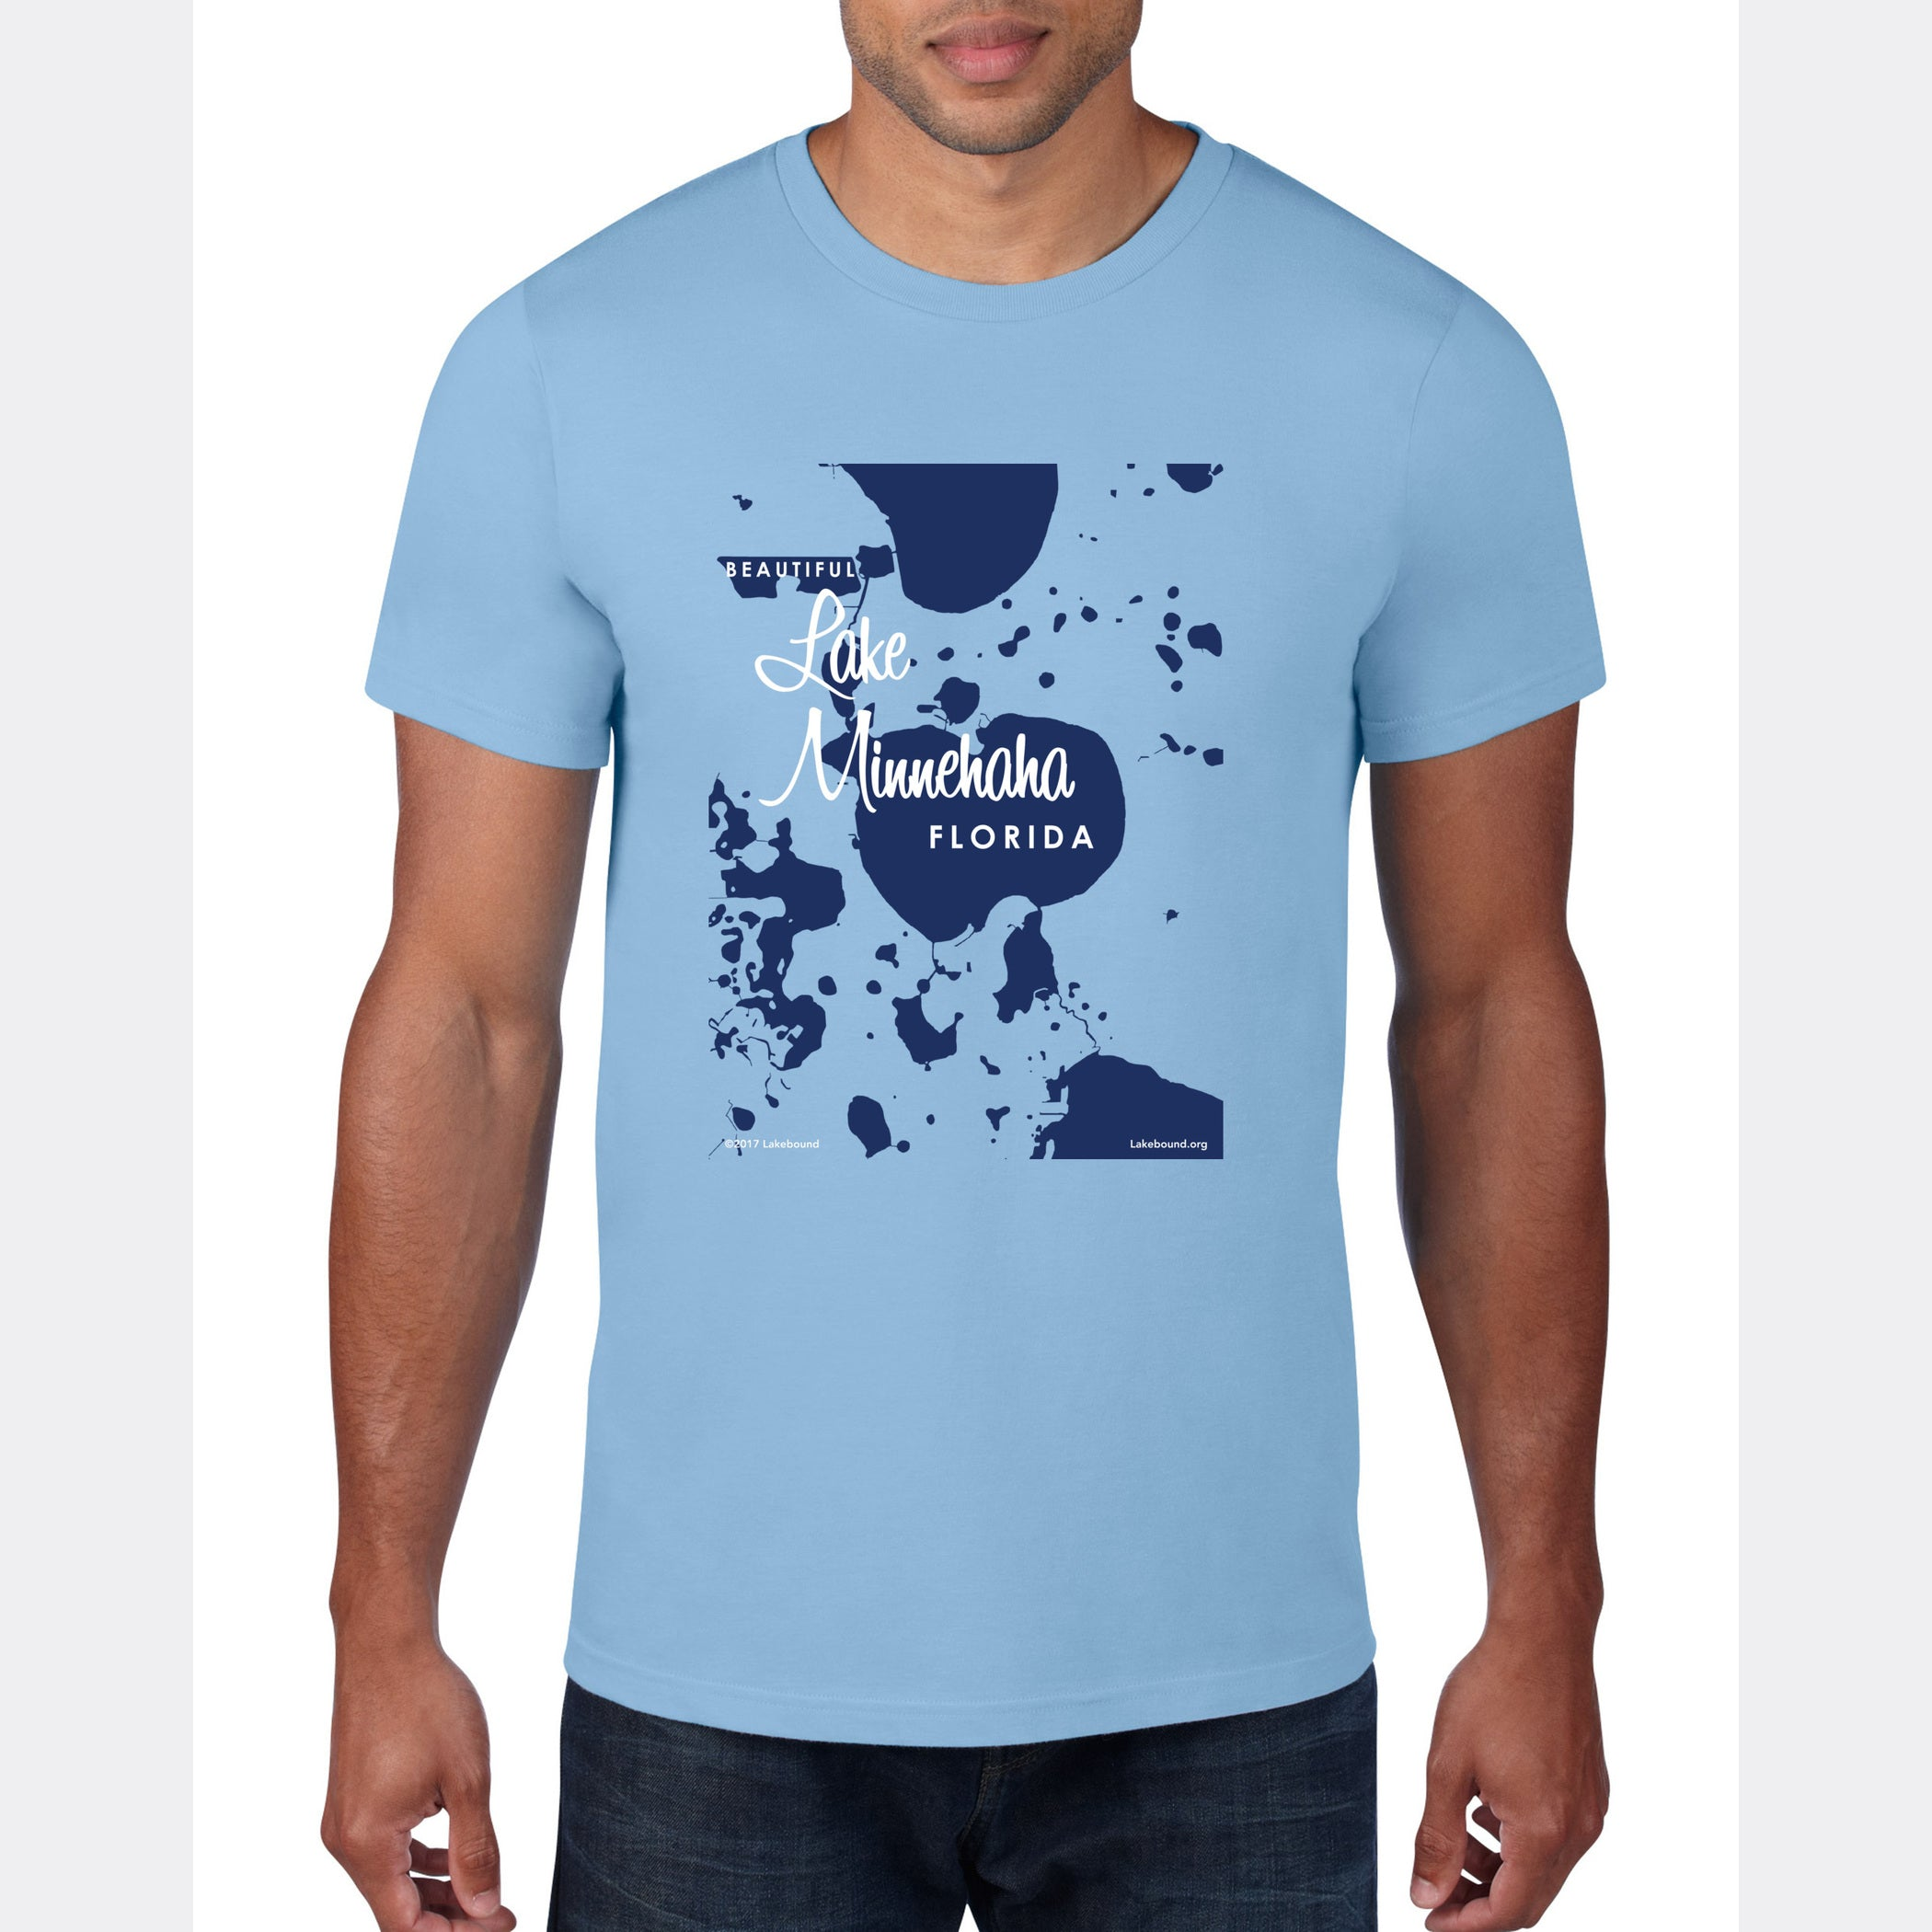 Lake Minnehaha, Florida, T-Shirt